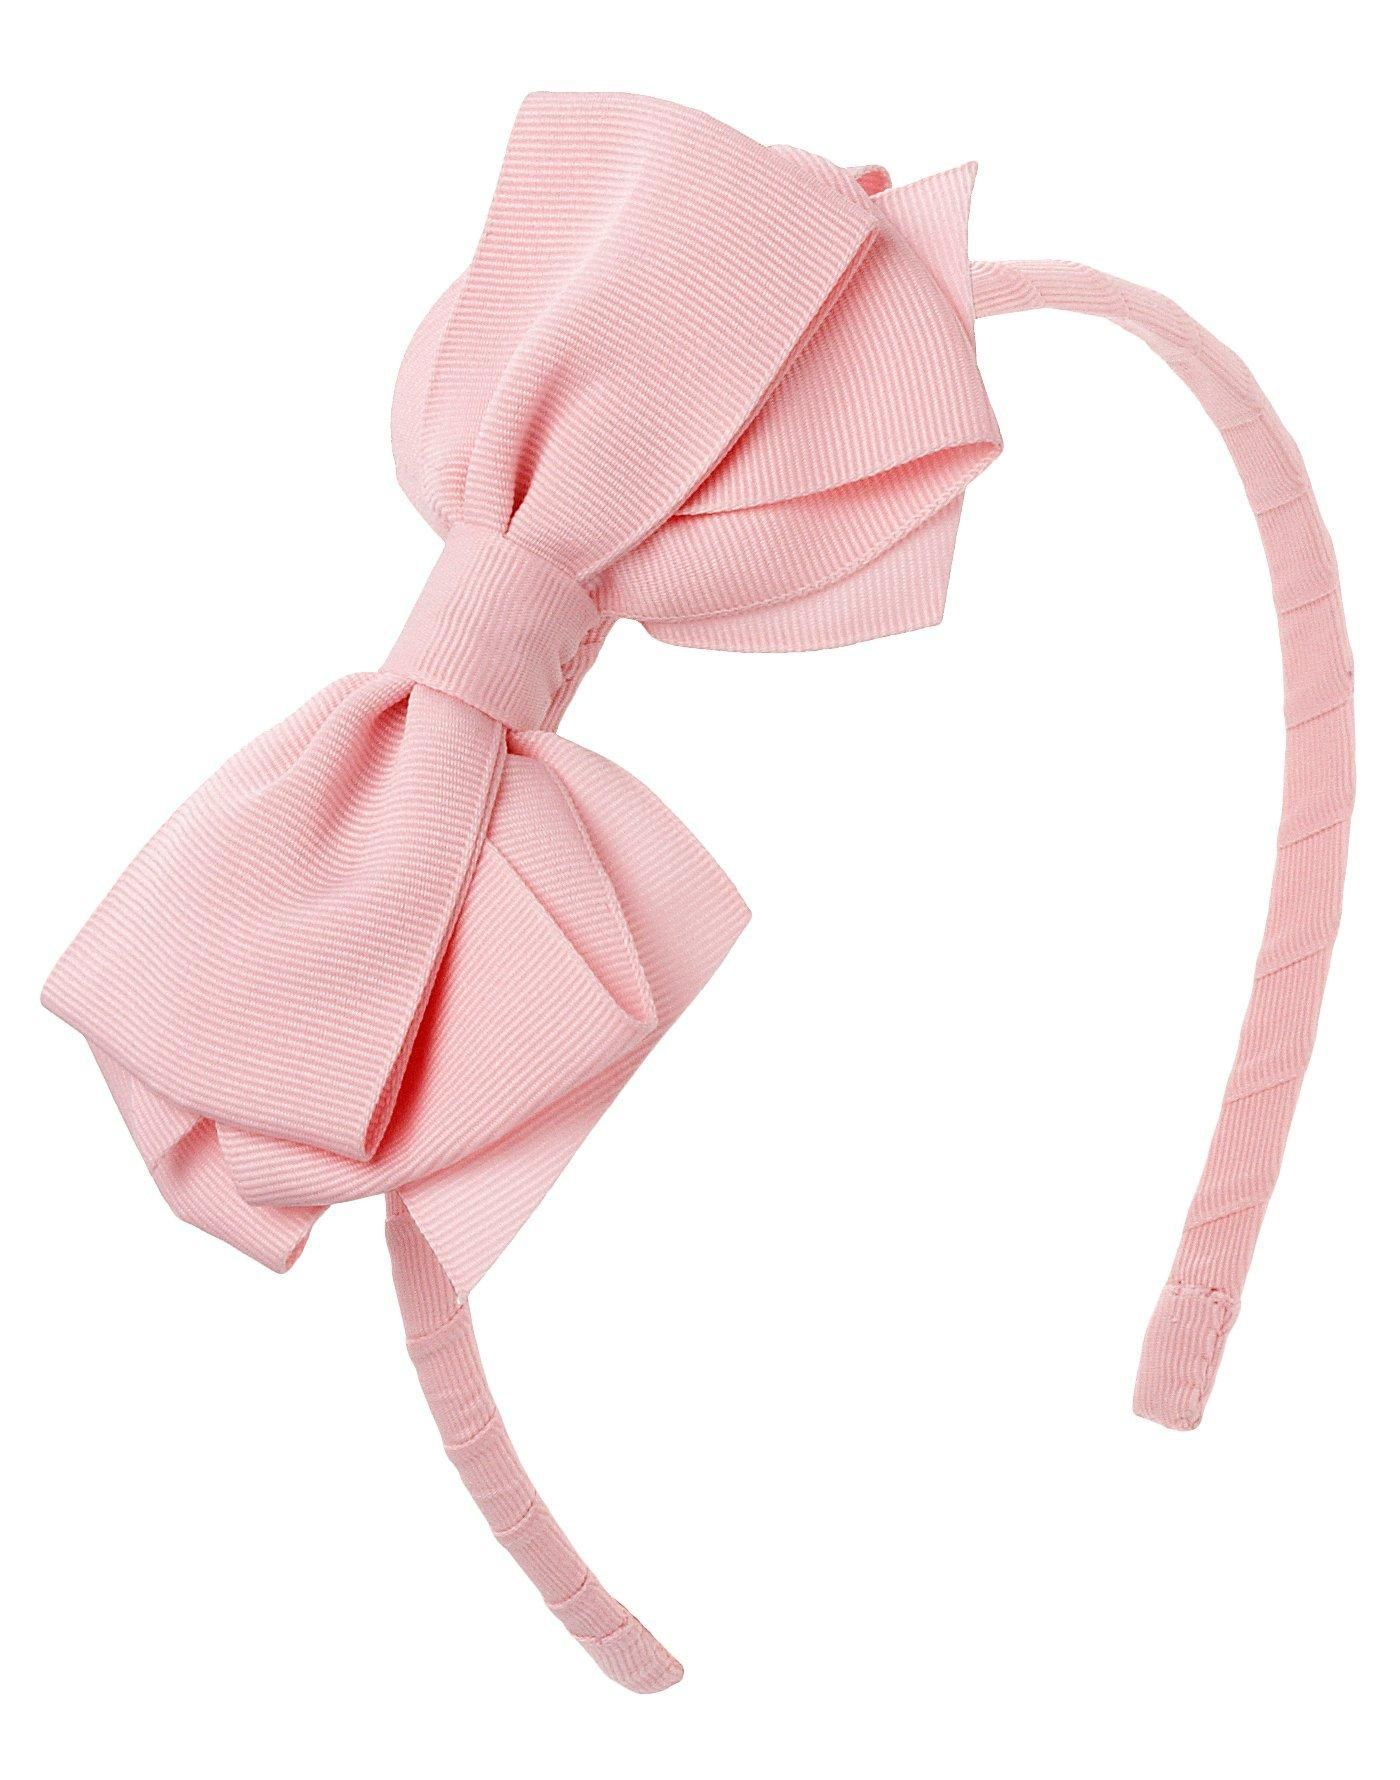 A fashionable and chic look our bow headband in luxurious